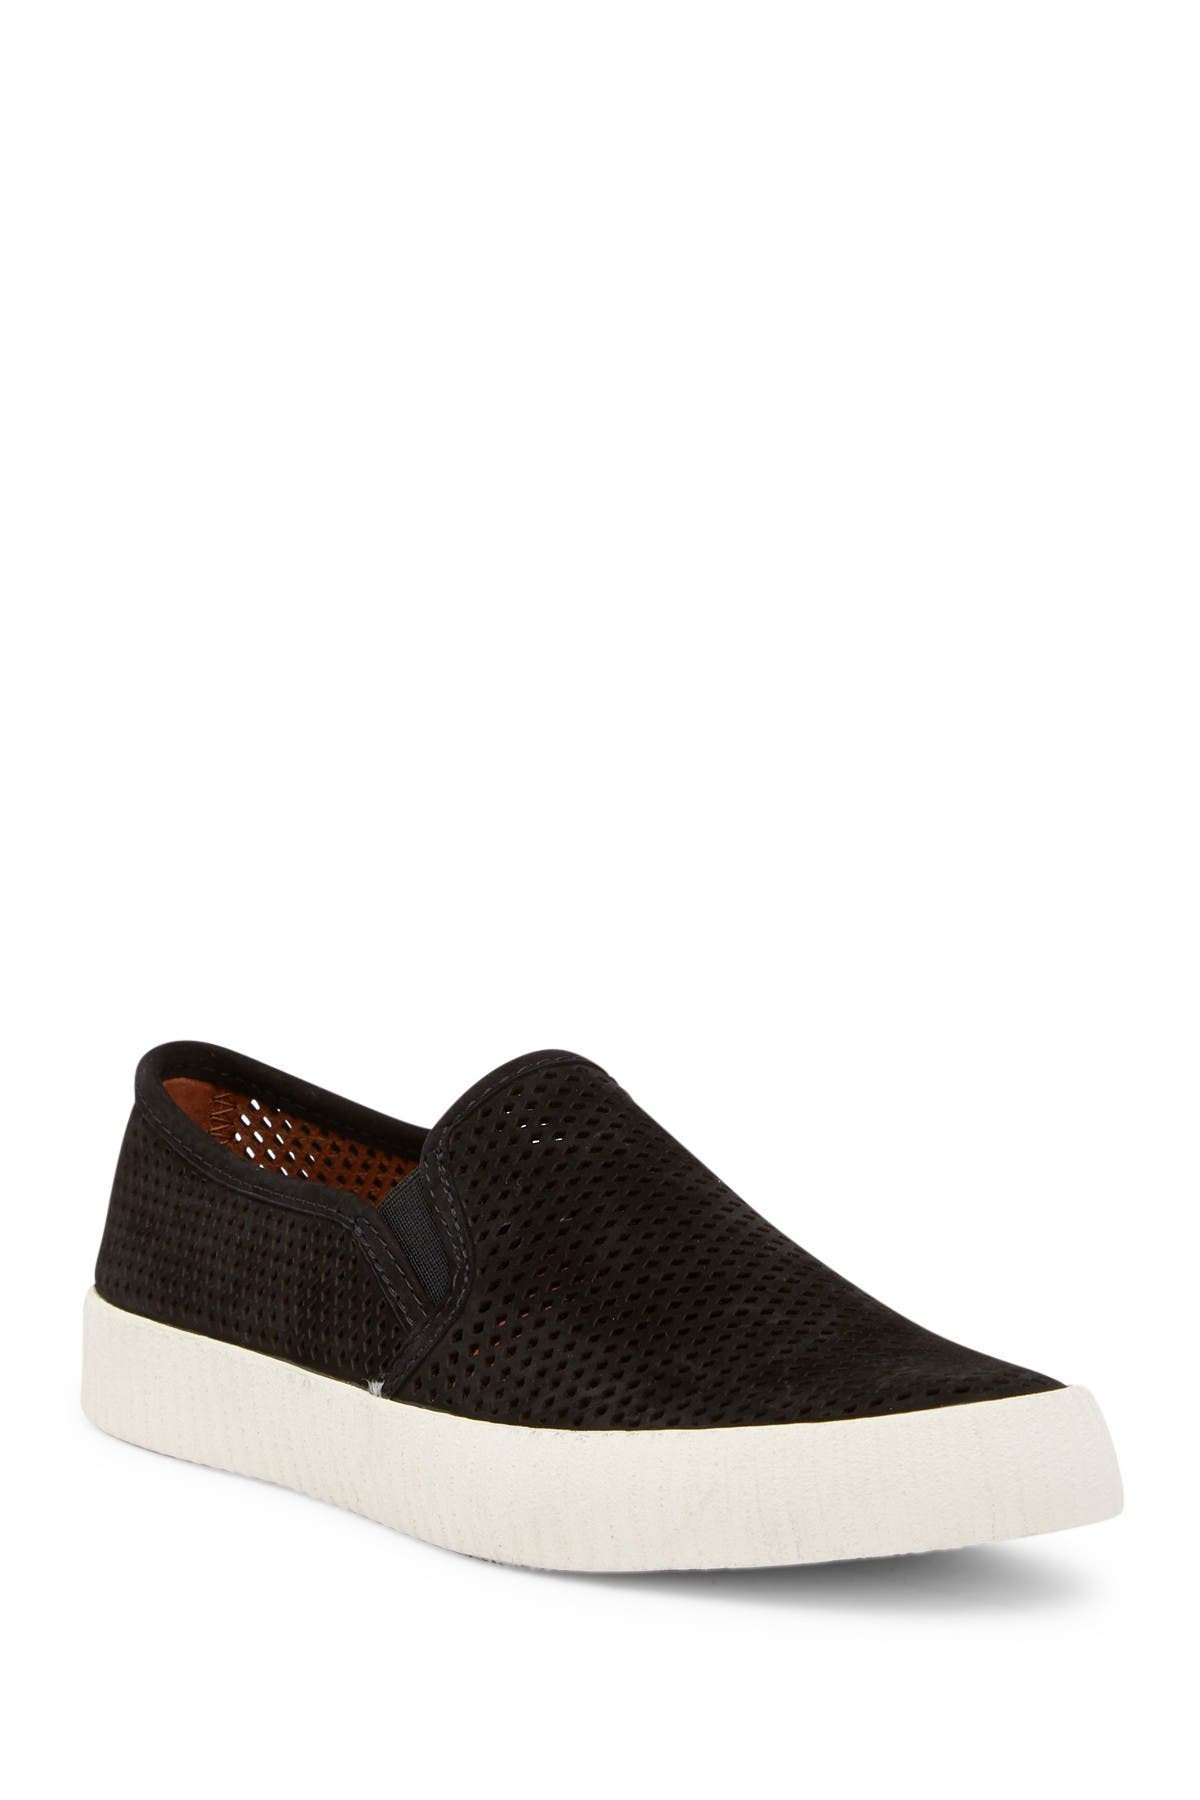 Frye | Camille Perforated Slip-On